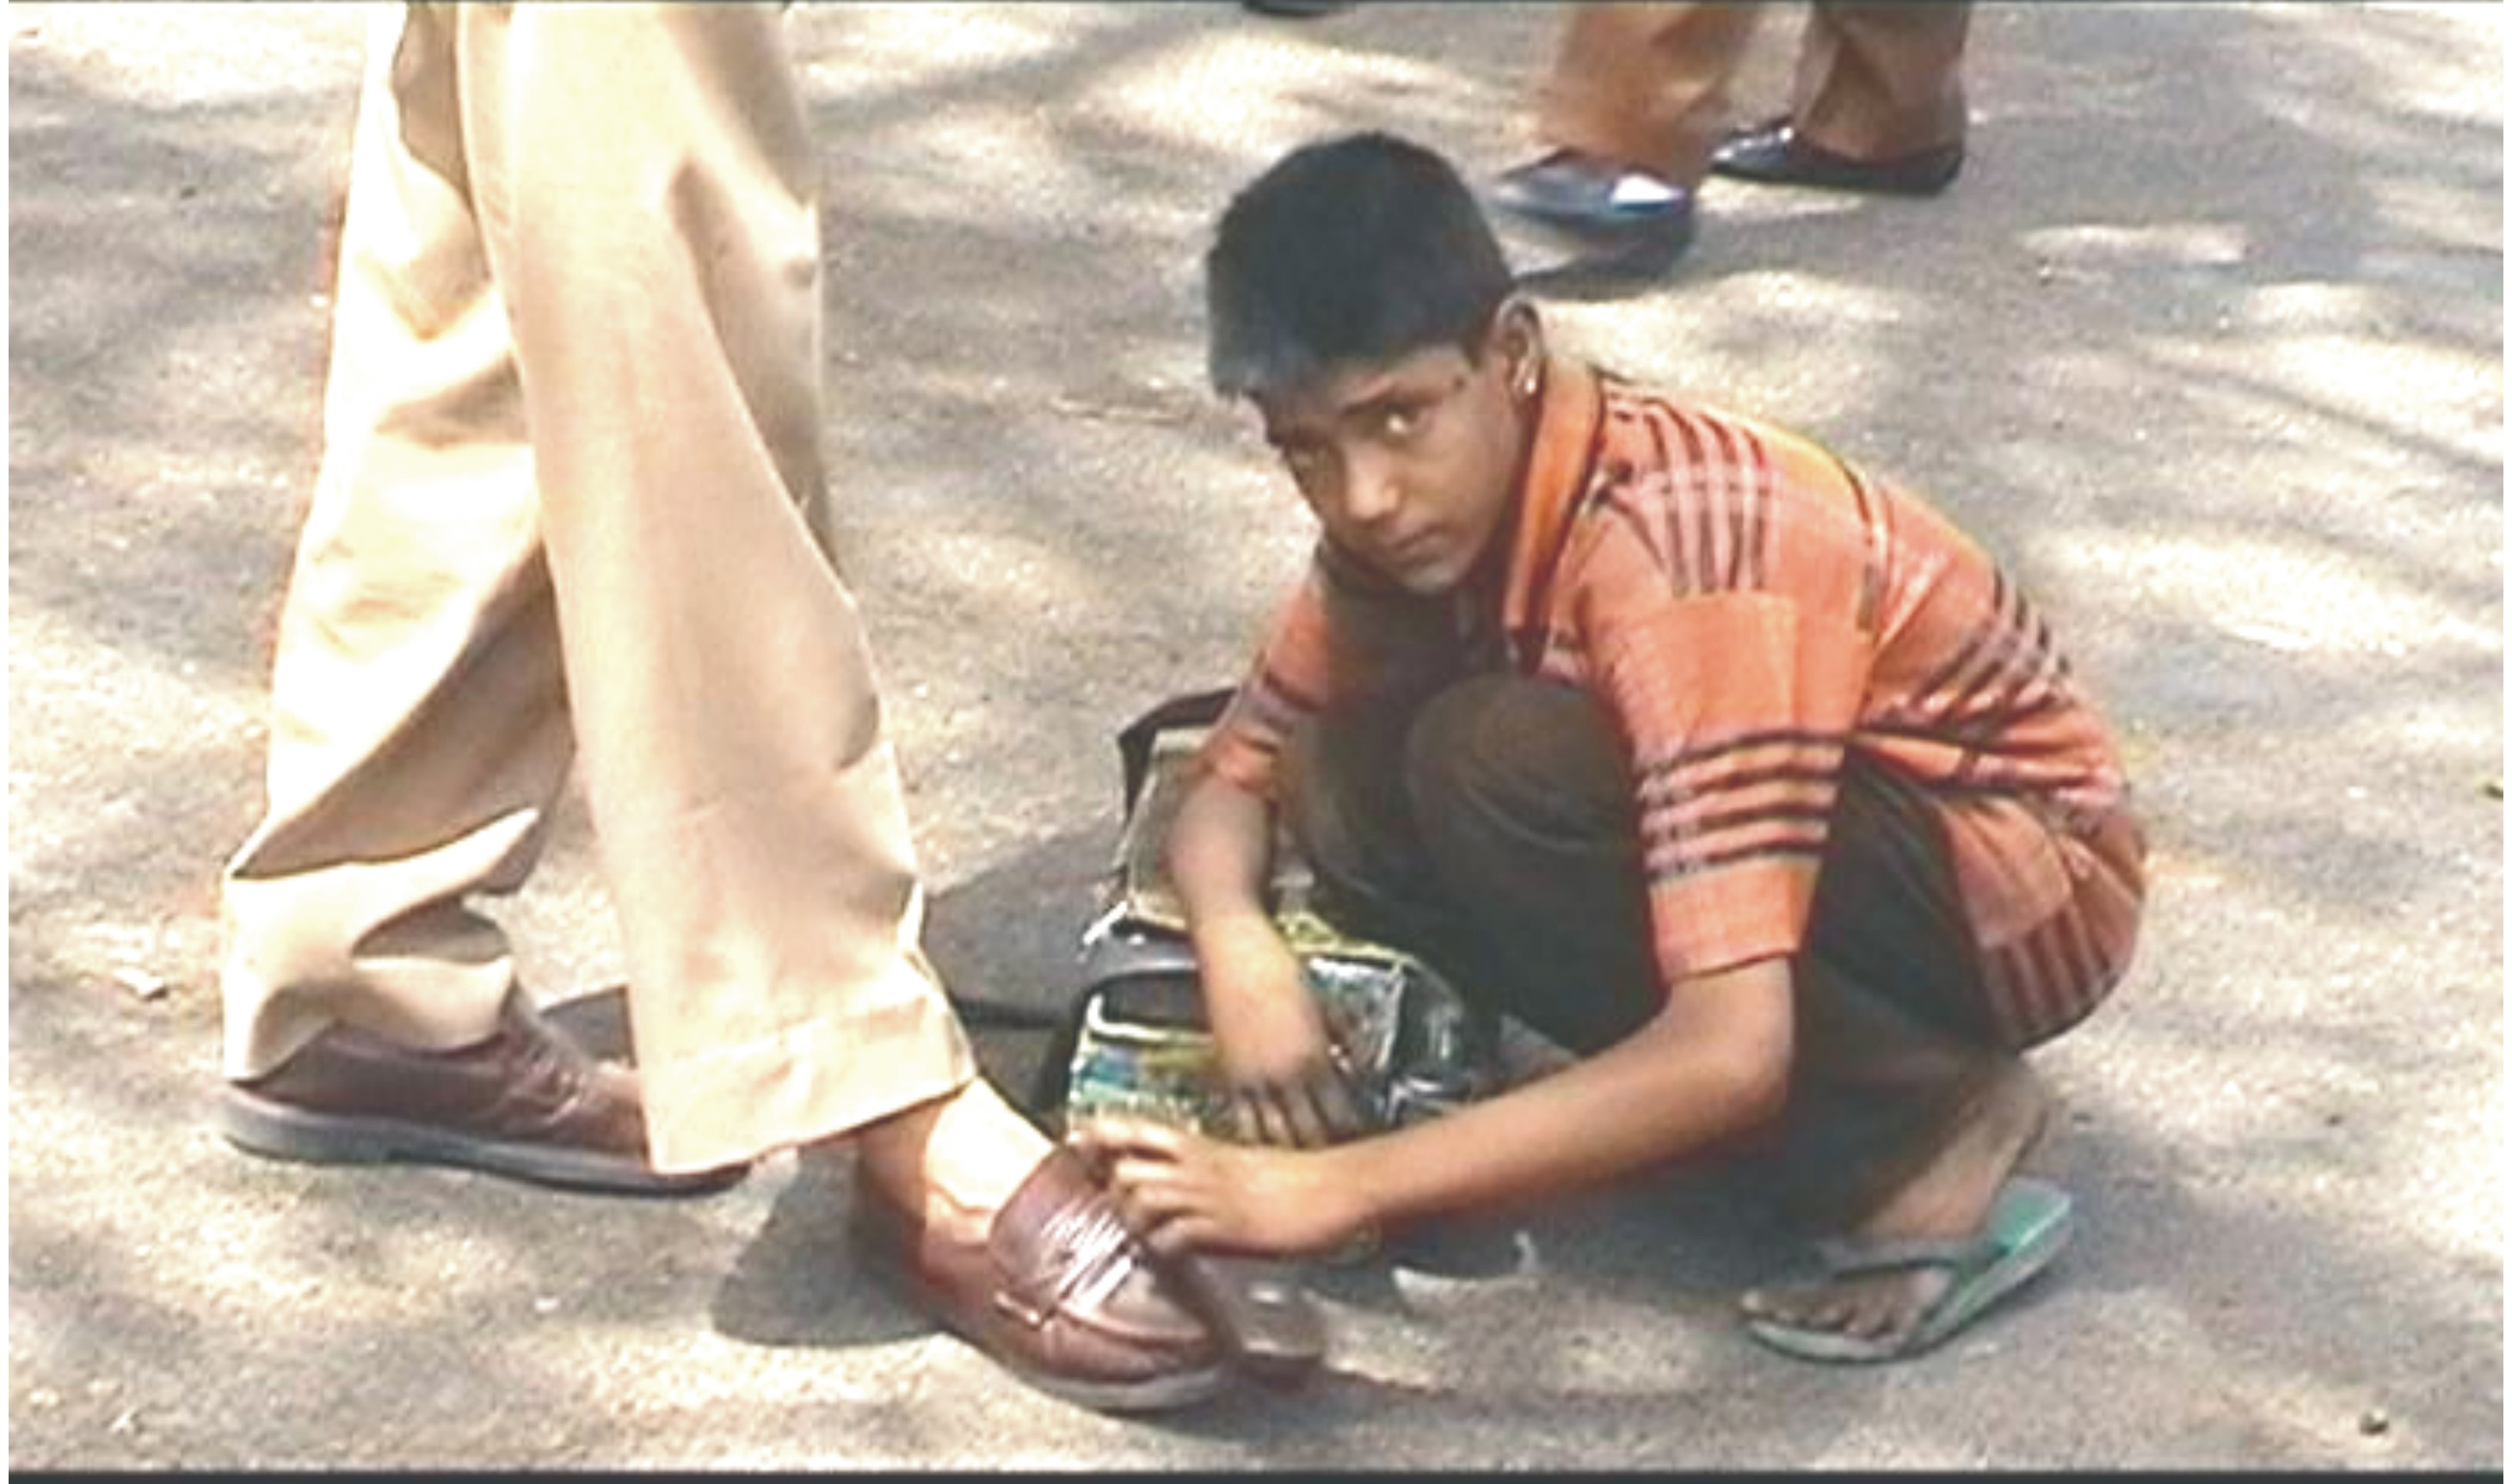 childlabour with profession of shoe polish